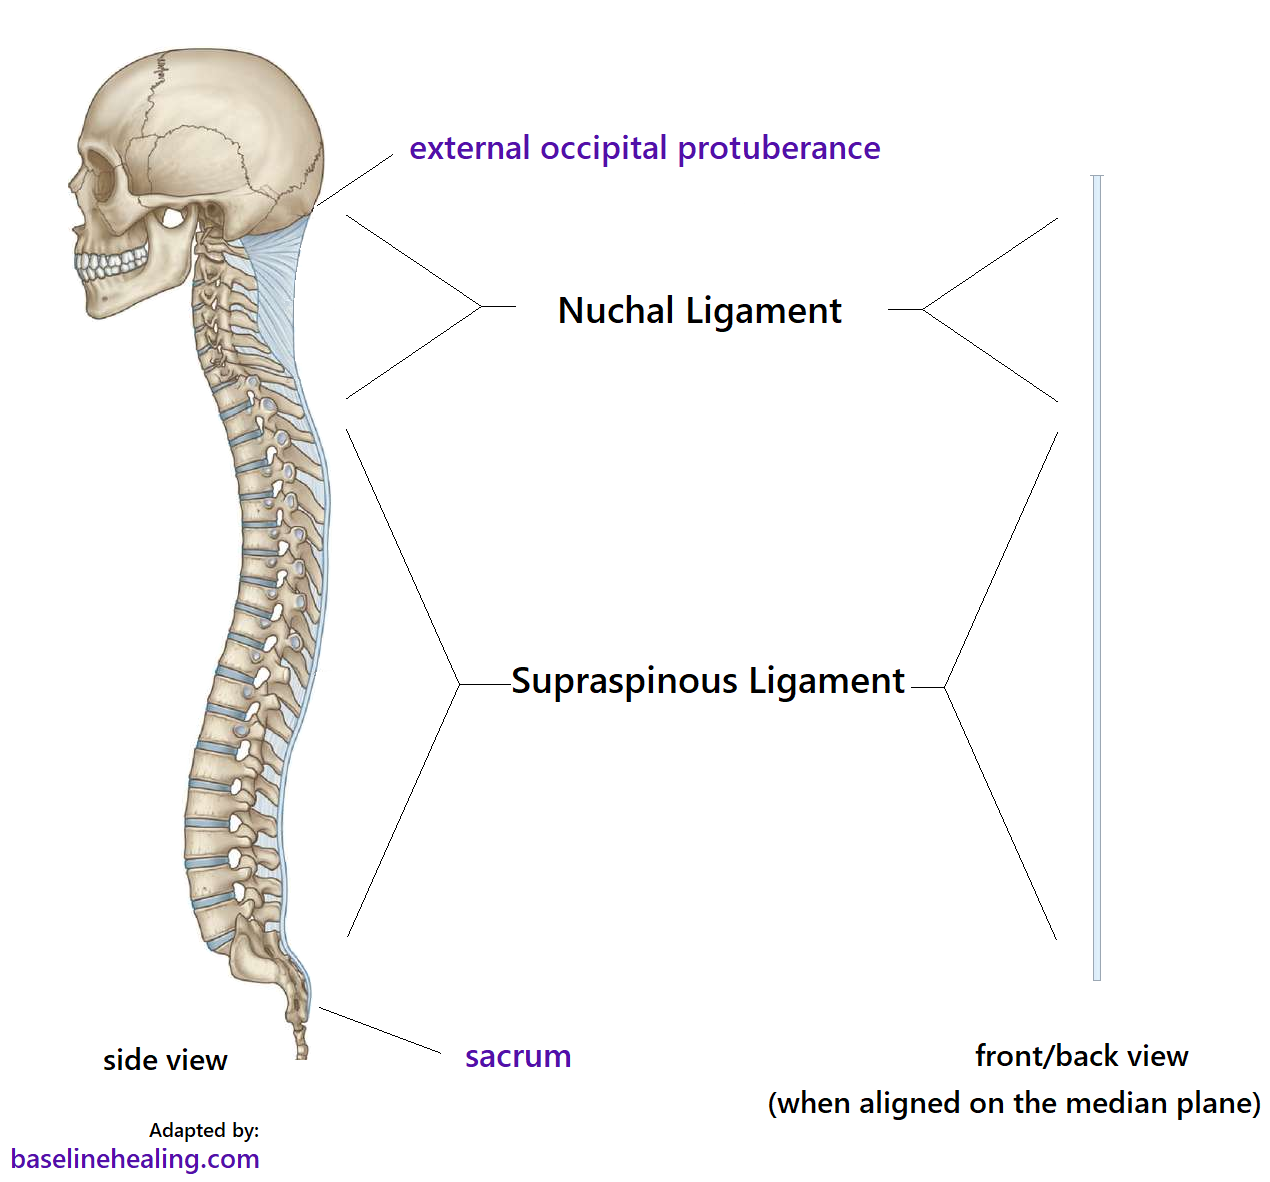 showing the skull and spine with the nuchal ligament and supraspinous ligaments that attach to each vertebra. These ligaments form one continuous structure  midline at the posterior (back) of the body.  The nuchal and supraspinous ligaments follow the contour of the spine when seen from the side. When these structures are aligned i.e. in a straight line on the median plane they appear as a straight line from the front or back. From the side the nuchal ligament can be seen to be a 'leaf' of tissue in the back of the neck, like a blade maybe. It should be possible to palpate the nuchal ligament in the neck, but imbalance and misalignment make this harder.